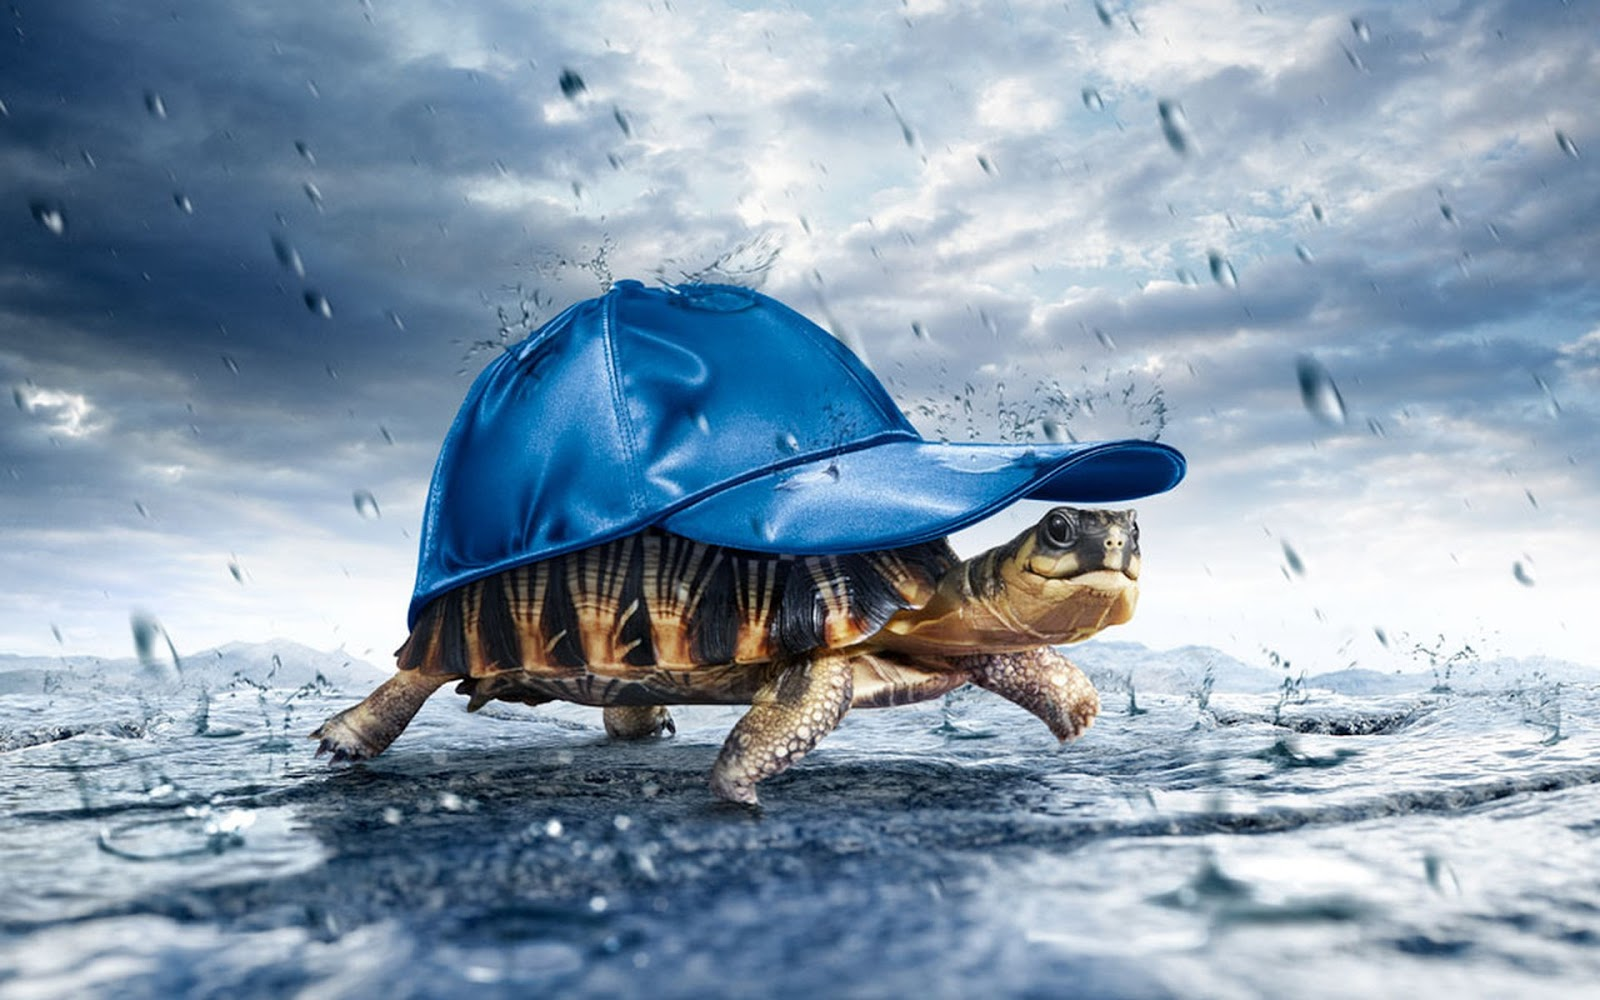 Enjoyable rainy day sms shayariesbarish funny quotes messages top msgs greetings all the revel fun in rainy day the largest collection of rainy day sms on my blog browse our well collection of rain mobile sms jokes m4hsunfo